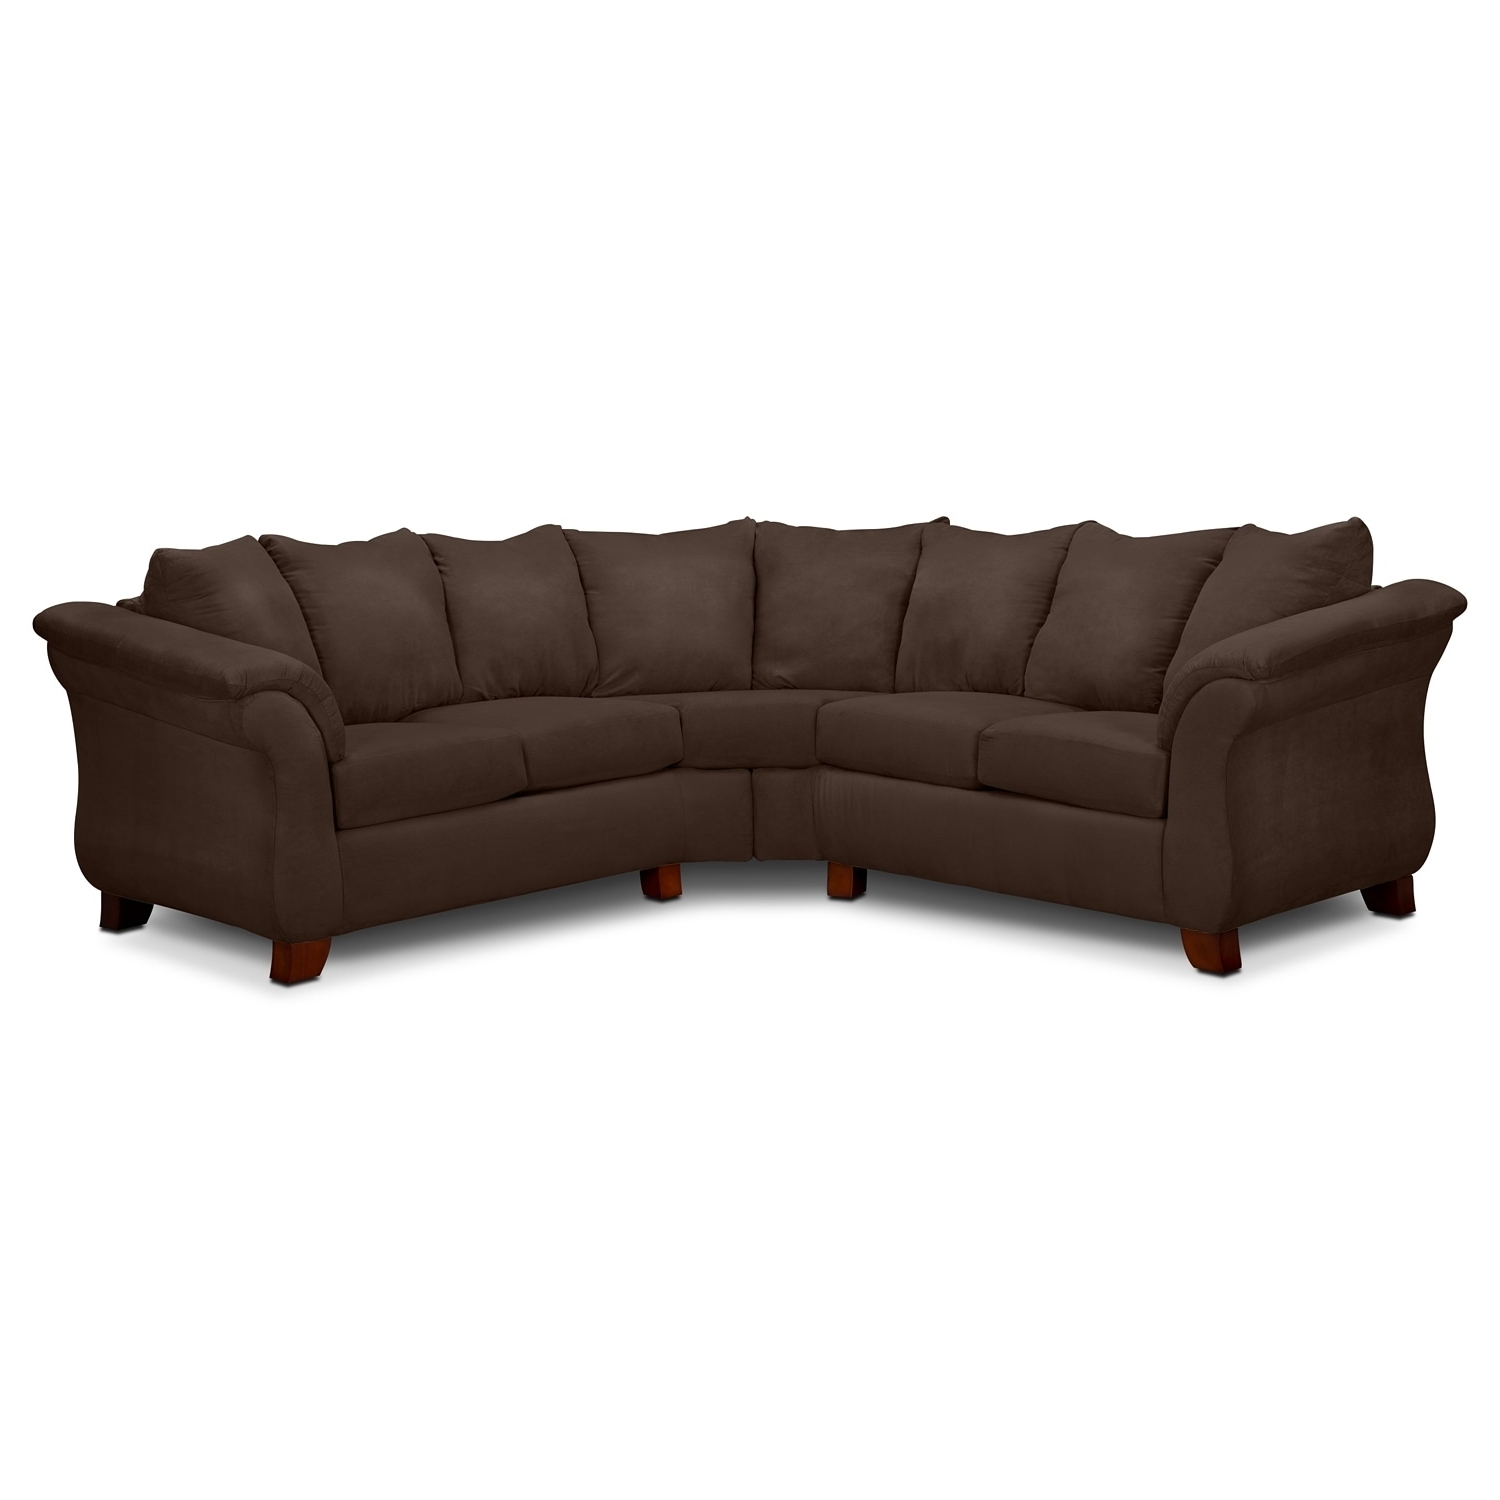 Value City Furniture And Mattresses in Popular Sectional Sofas Under 600